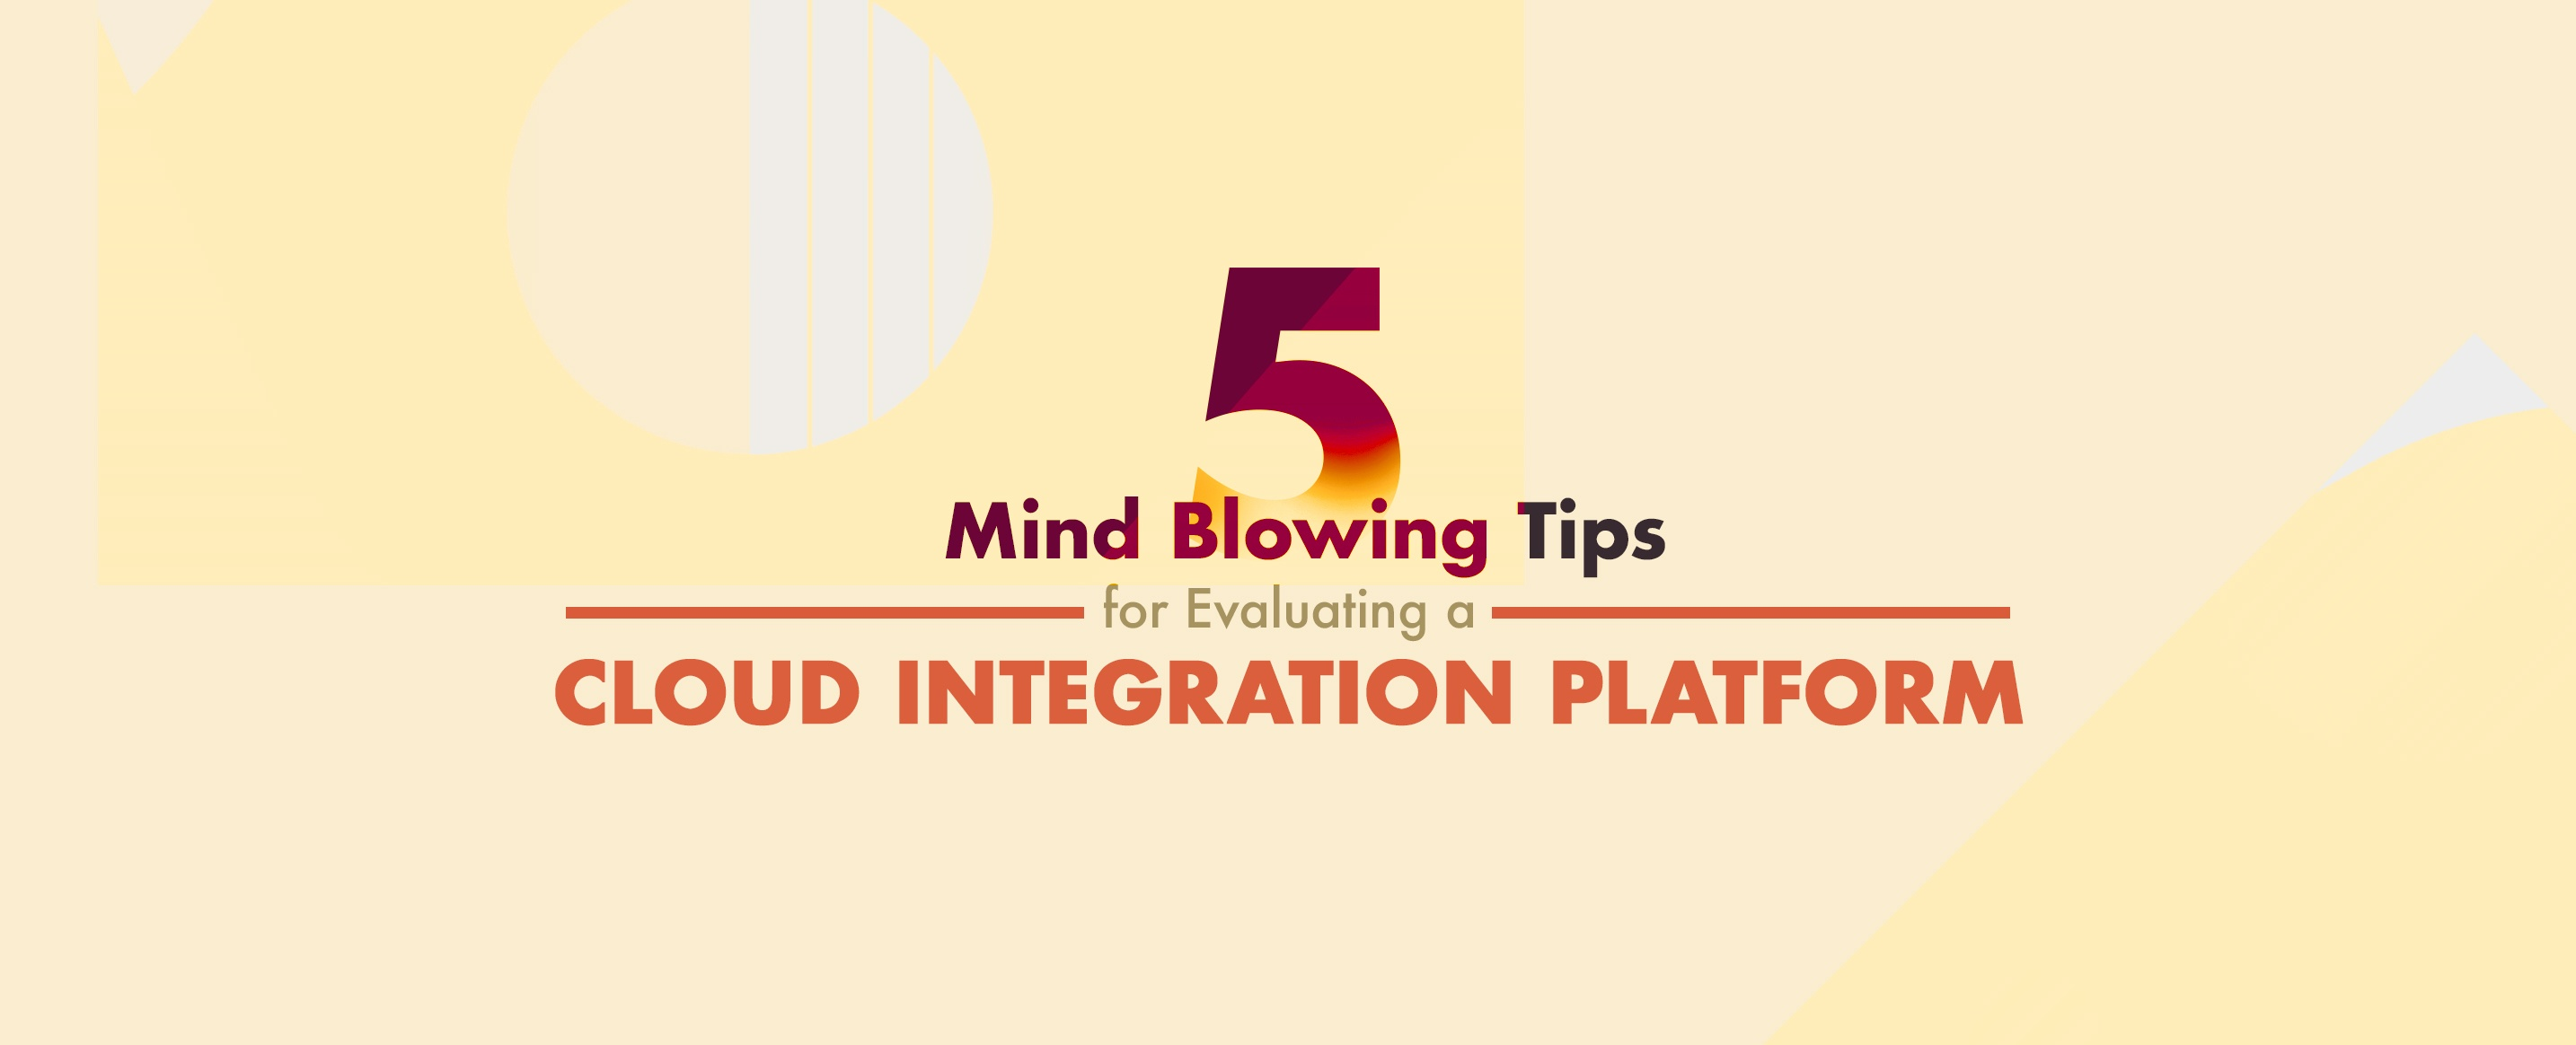 5-Mind-Blowing-Tips-for-Evaluating-a-Cloud-Integration-Platform